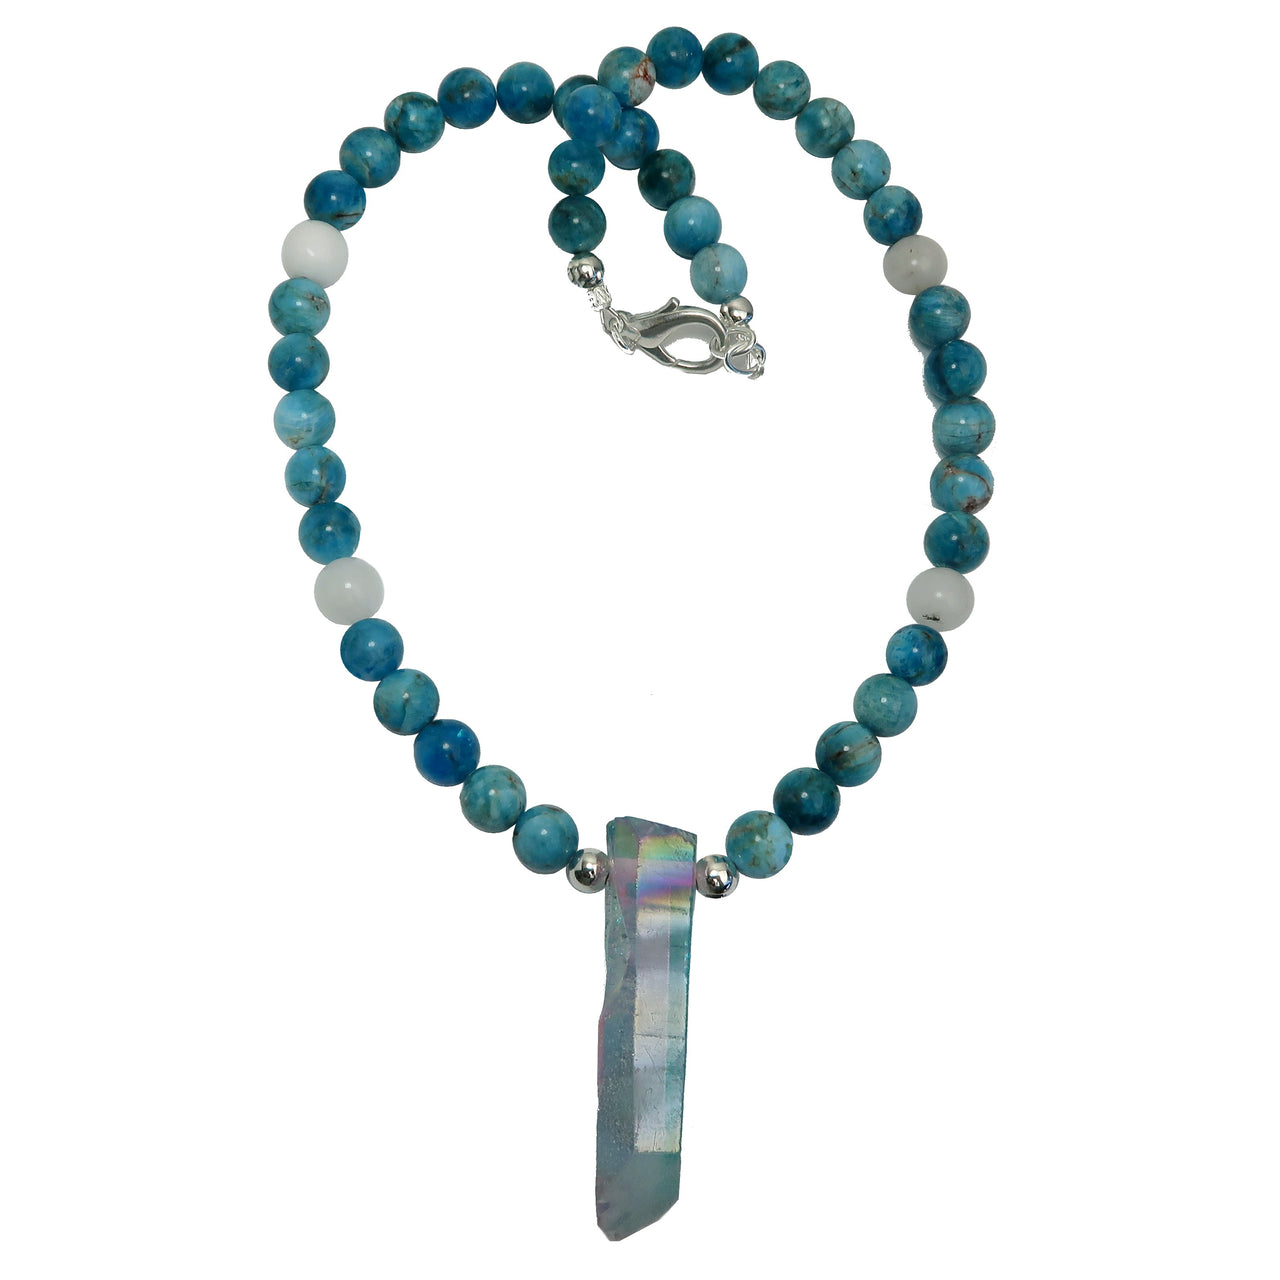 Quartz Aura Necklace Boutique Aqua Blue Apatite Snow White Statement Stone Point B01